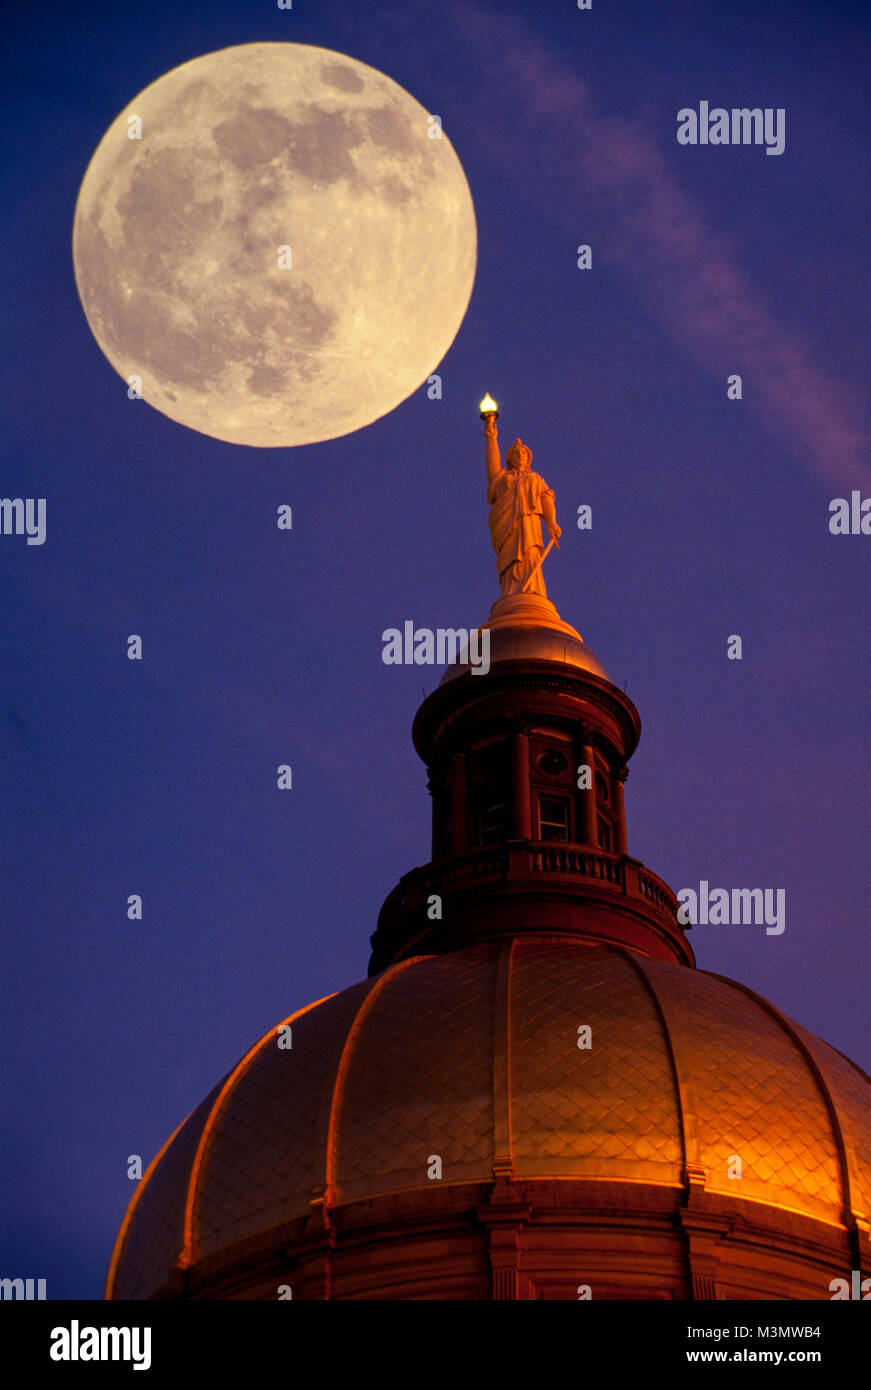 A full moon rises over the gold leaf dome of the Georgia State Capitol building in Atlanta, Georgia - Stock Image